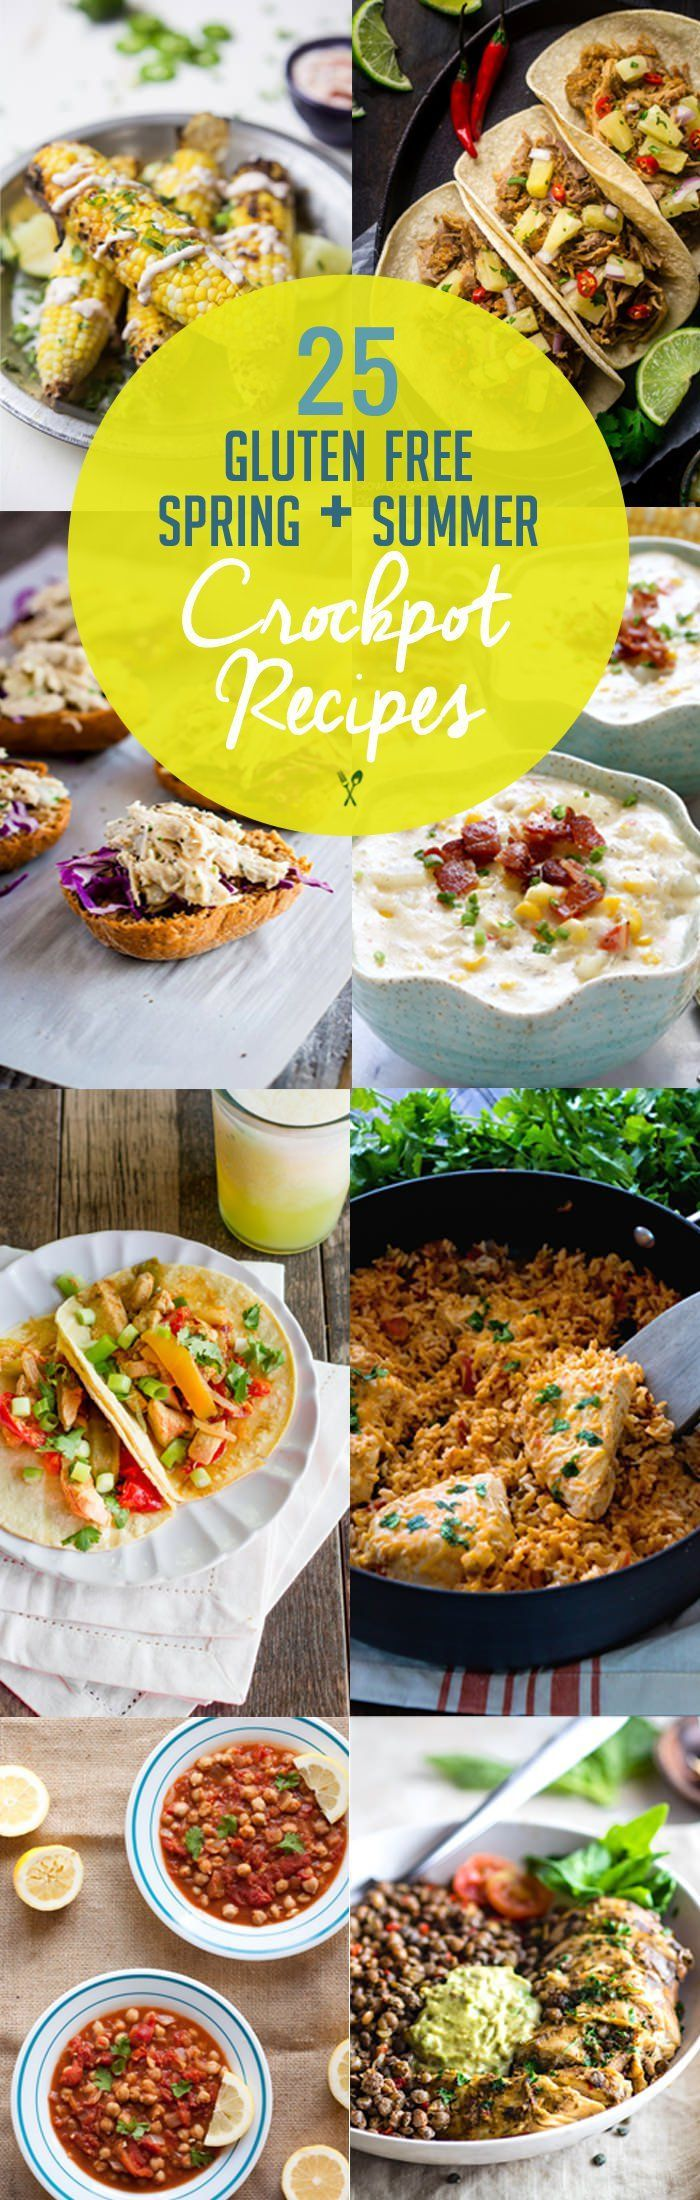 Easy crock pot recipes gluten free